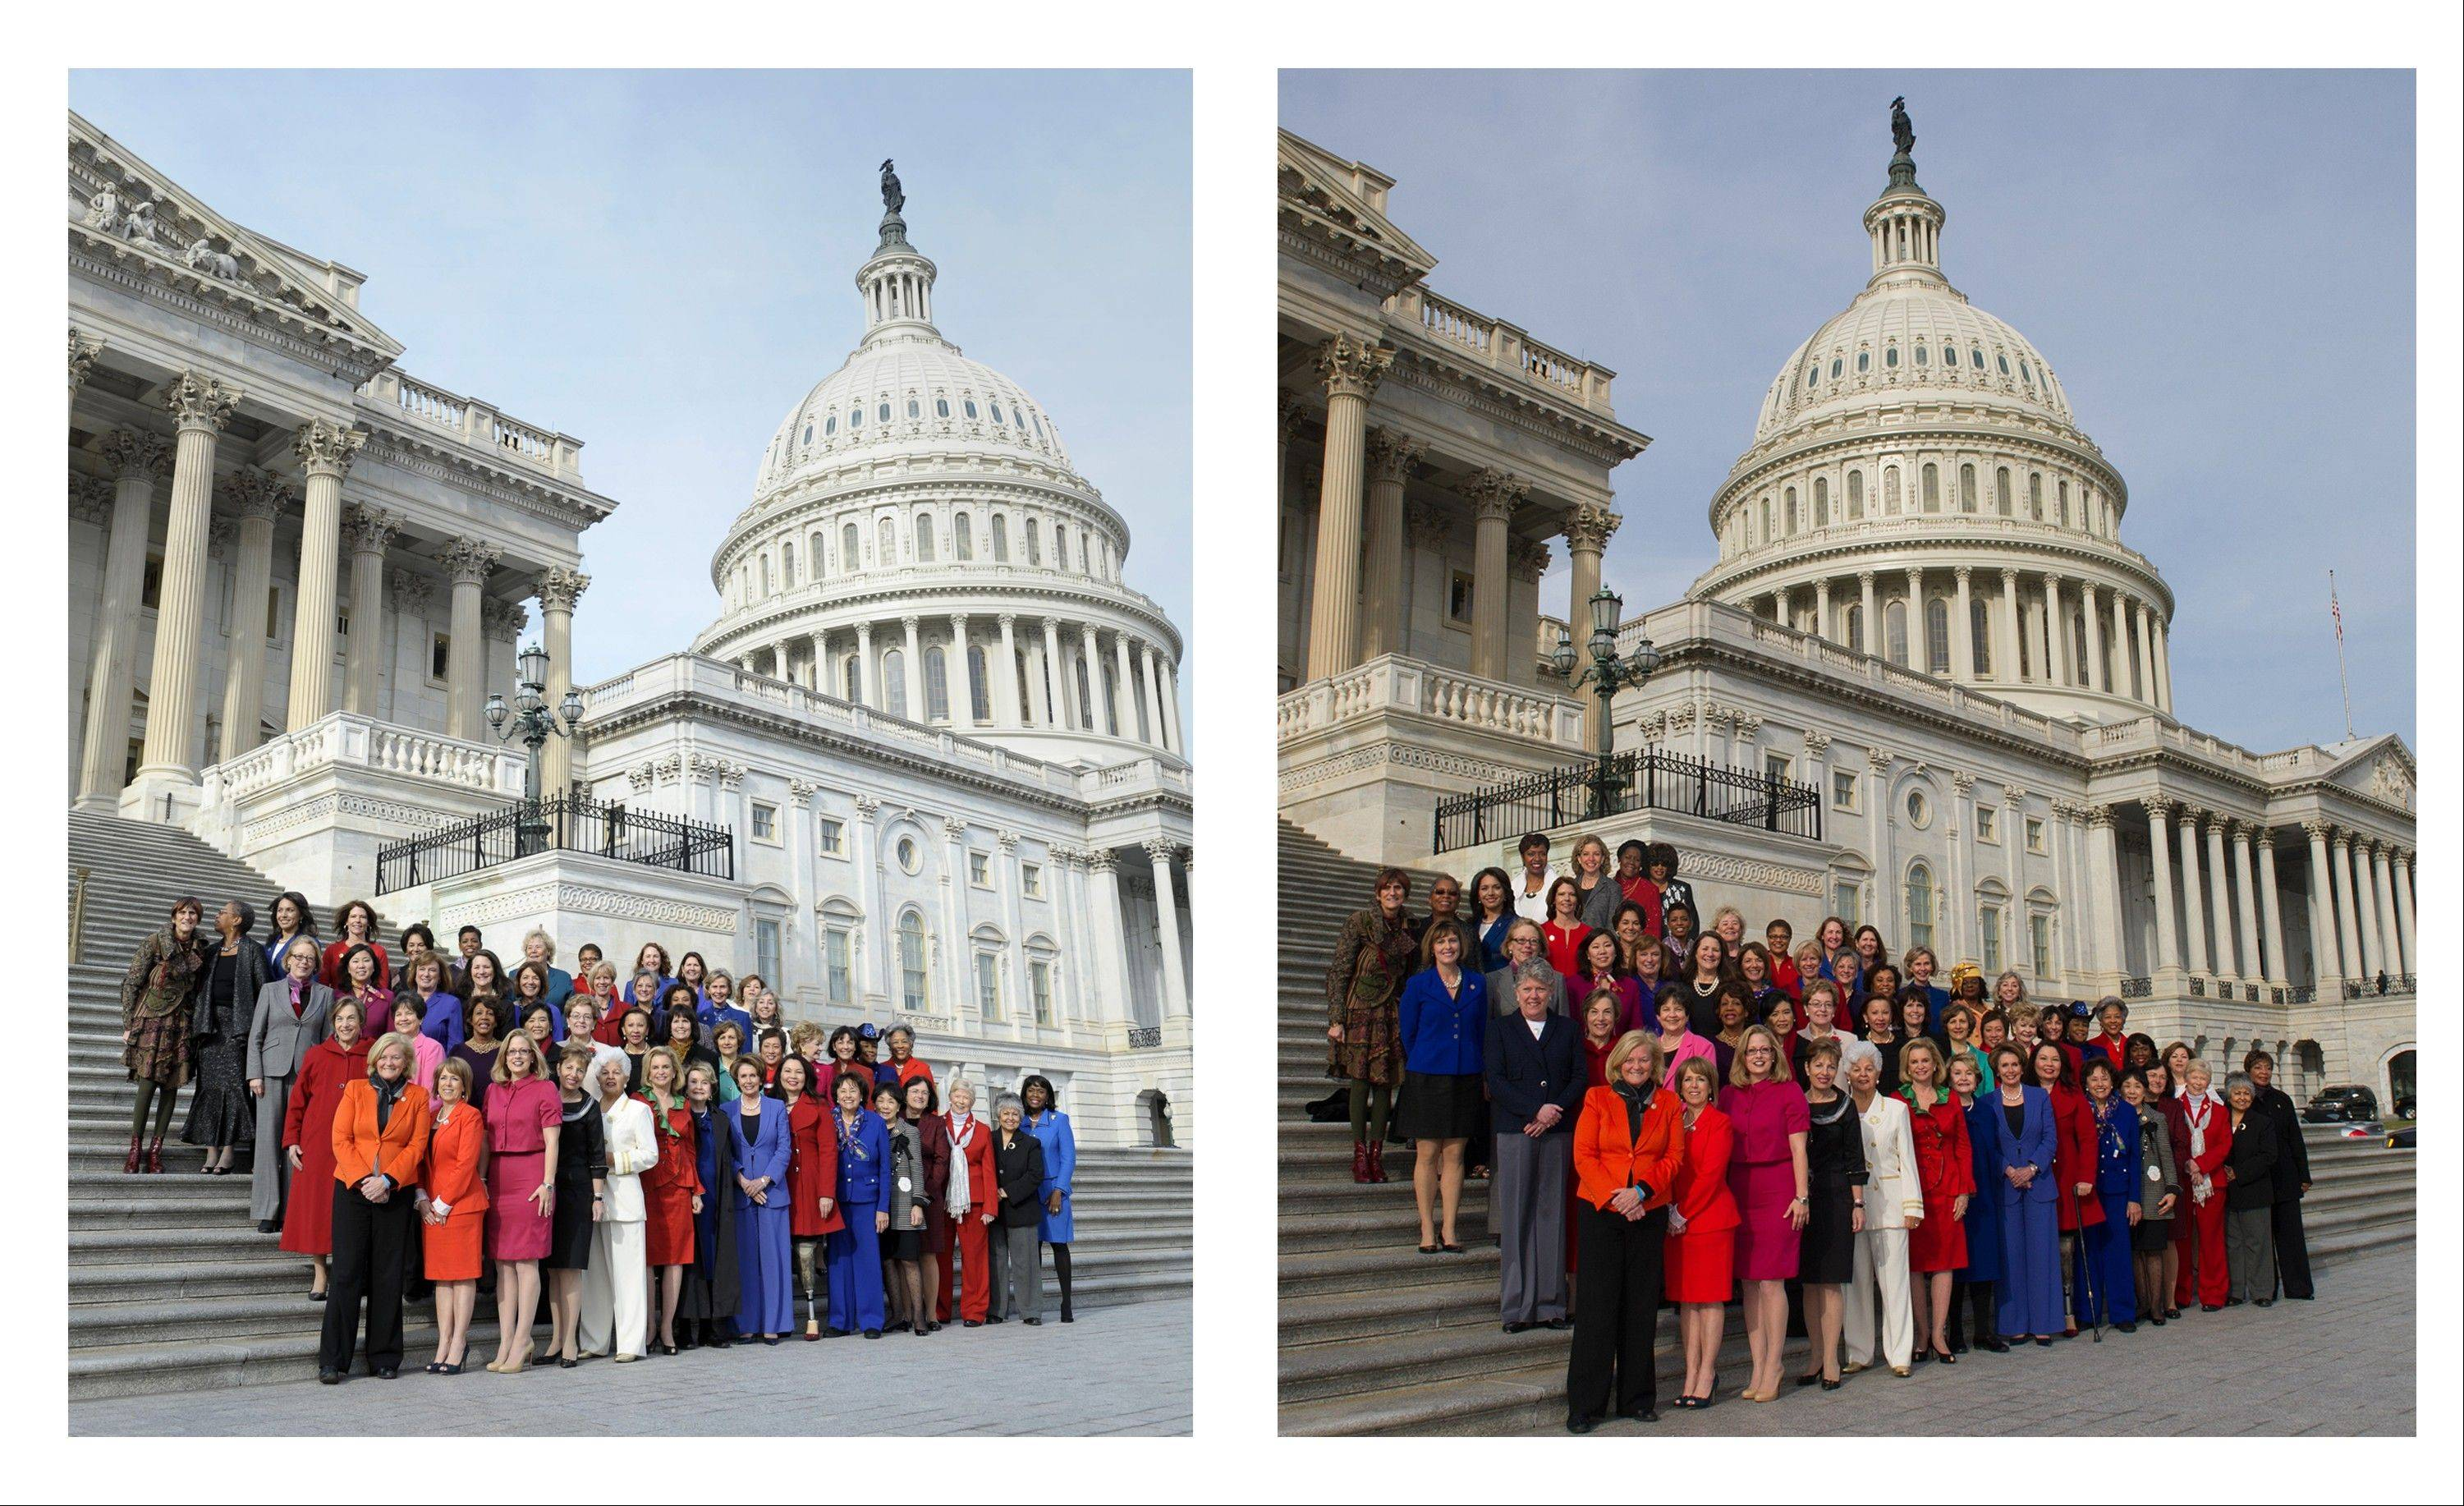 Associated Press This combo of two photos shows, at left, an Associated Press photo taken Jan. 3, 2013 of House Minority Leader Nancy Pelosi posing with female House members on Capitol Hill in Washington, and at right, a screen grab from Pelosi's Flickr page of an altered photo of Pelosi with female House members on Capitol Hill in Washington. The group photo shows four House members, in the back row, who arrived too late to pose on the Capitol steps.